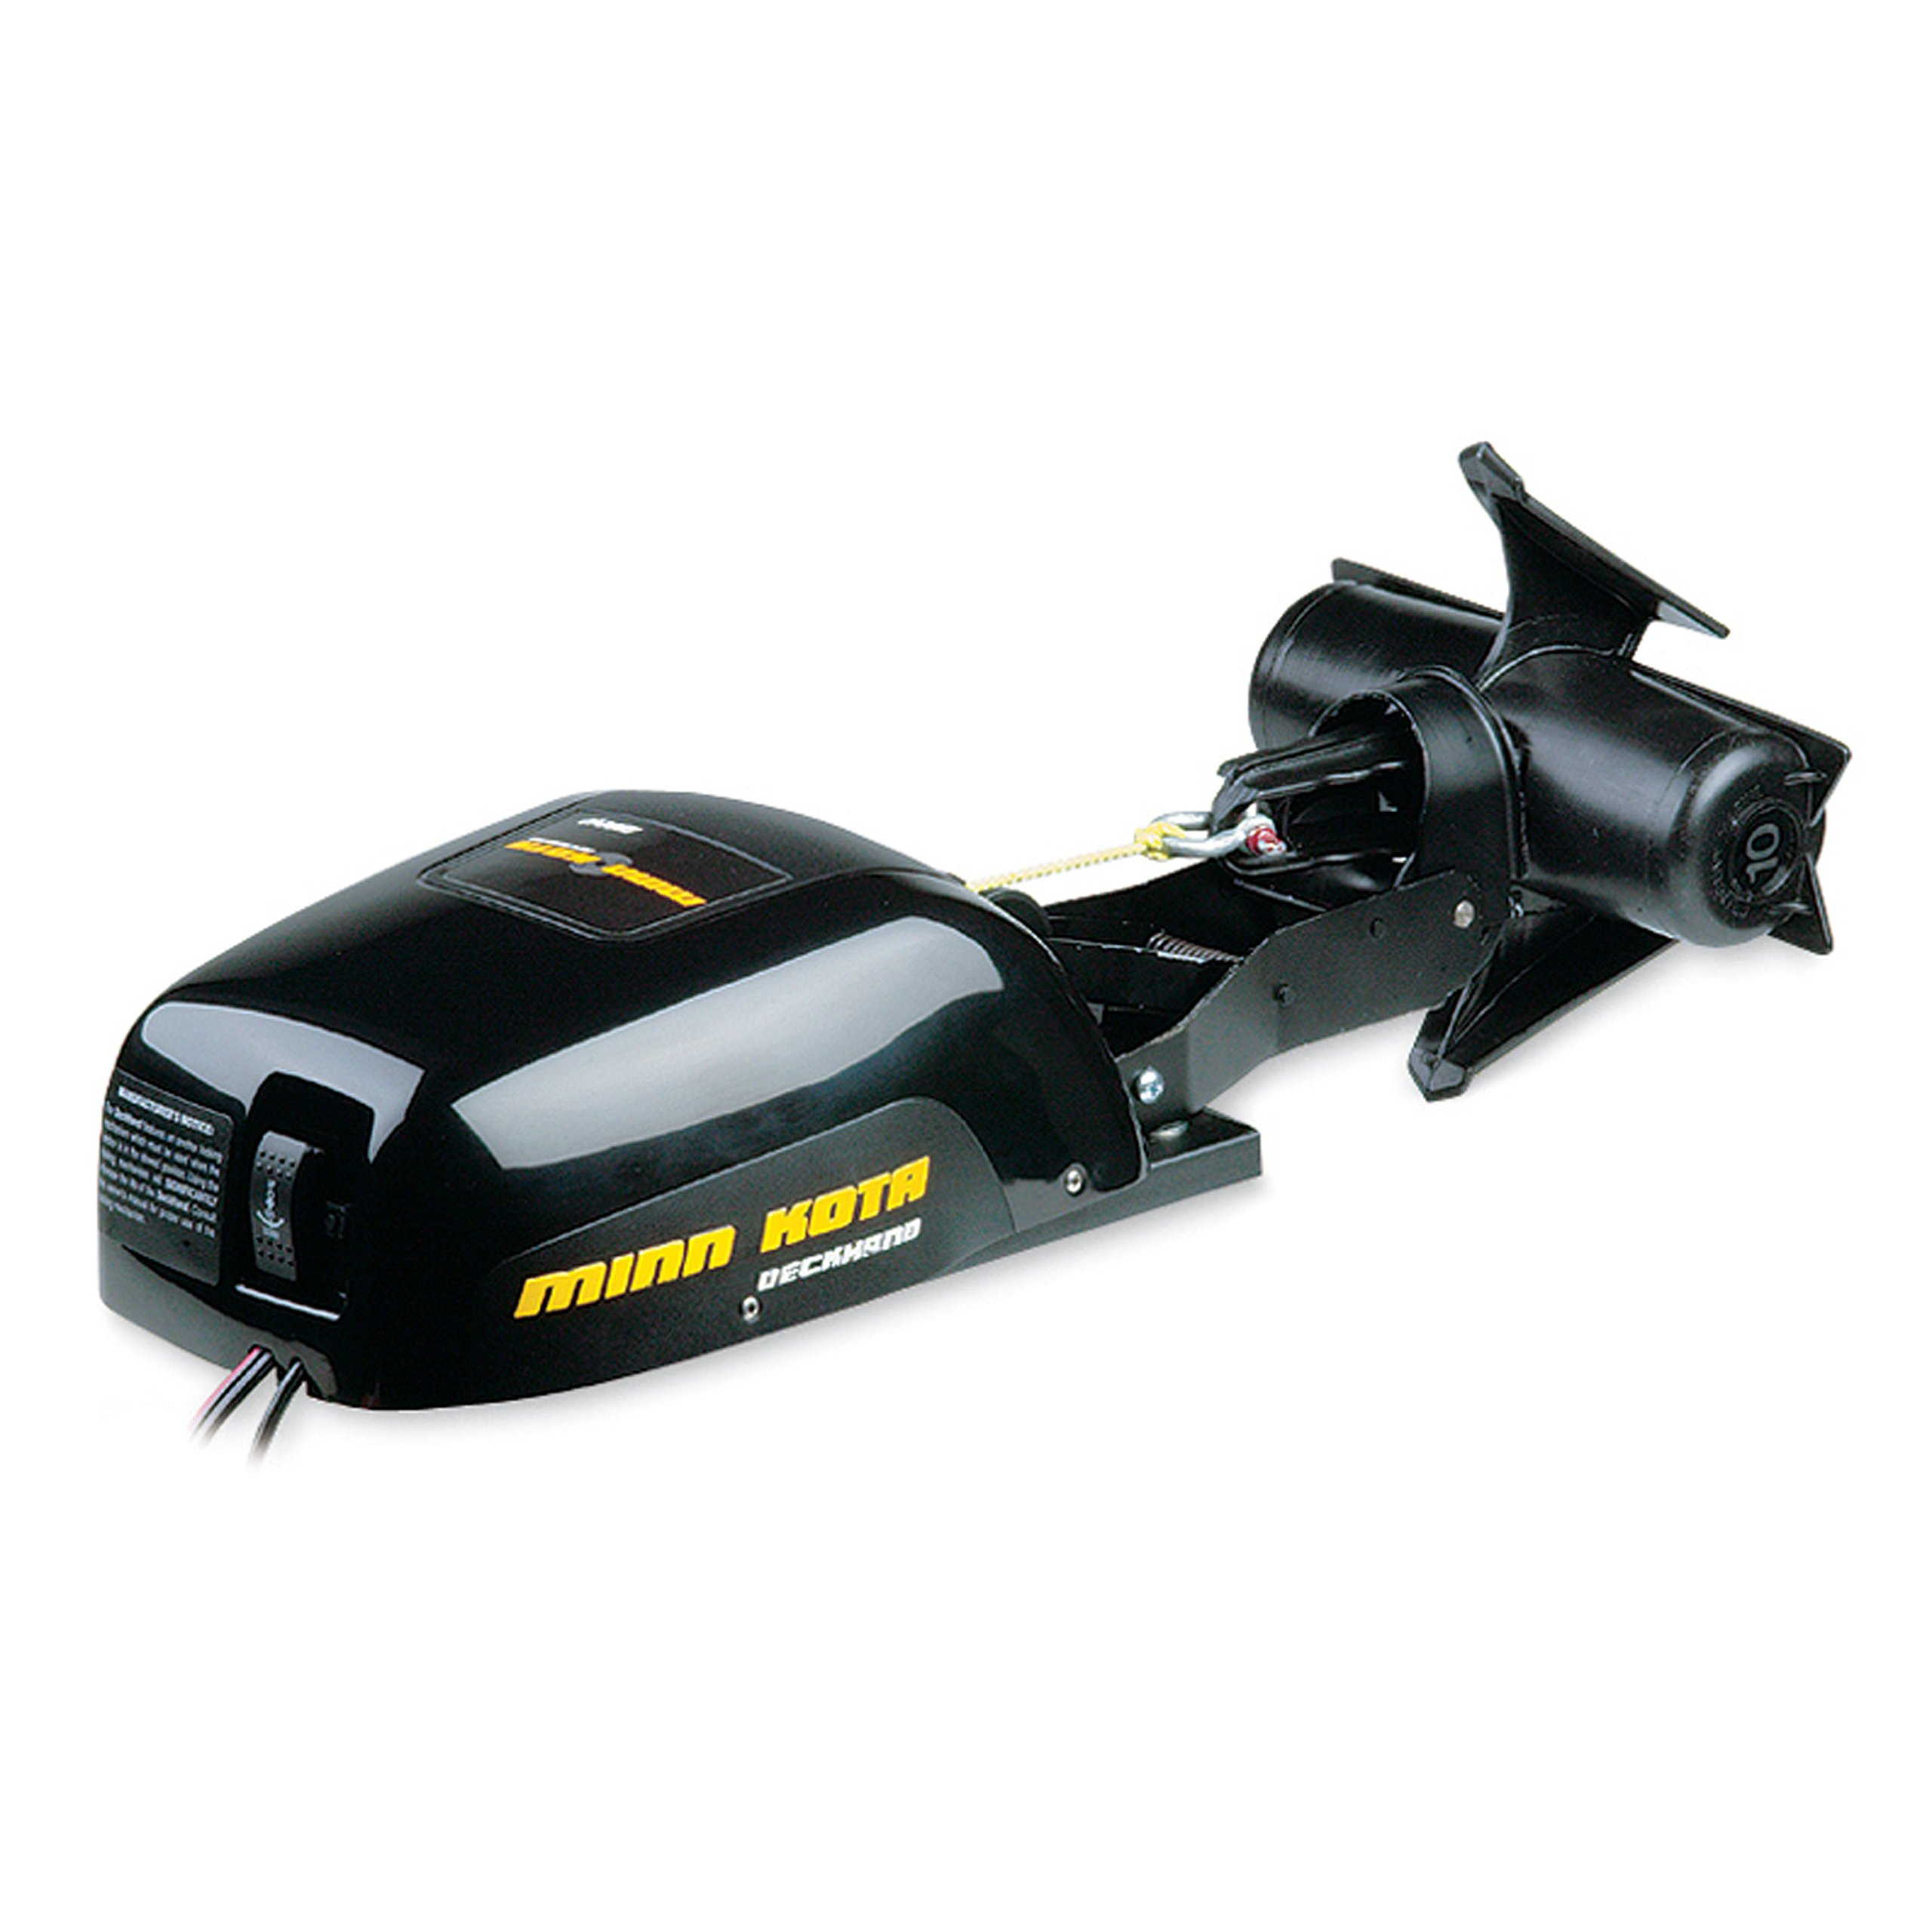 MinnKota Deckhand 40 Electric Anchor Winch (40 Lbs. Capacity) by Minn Kota